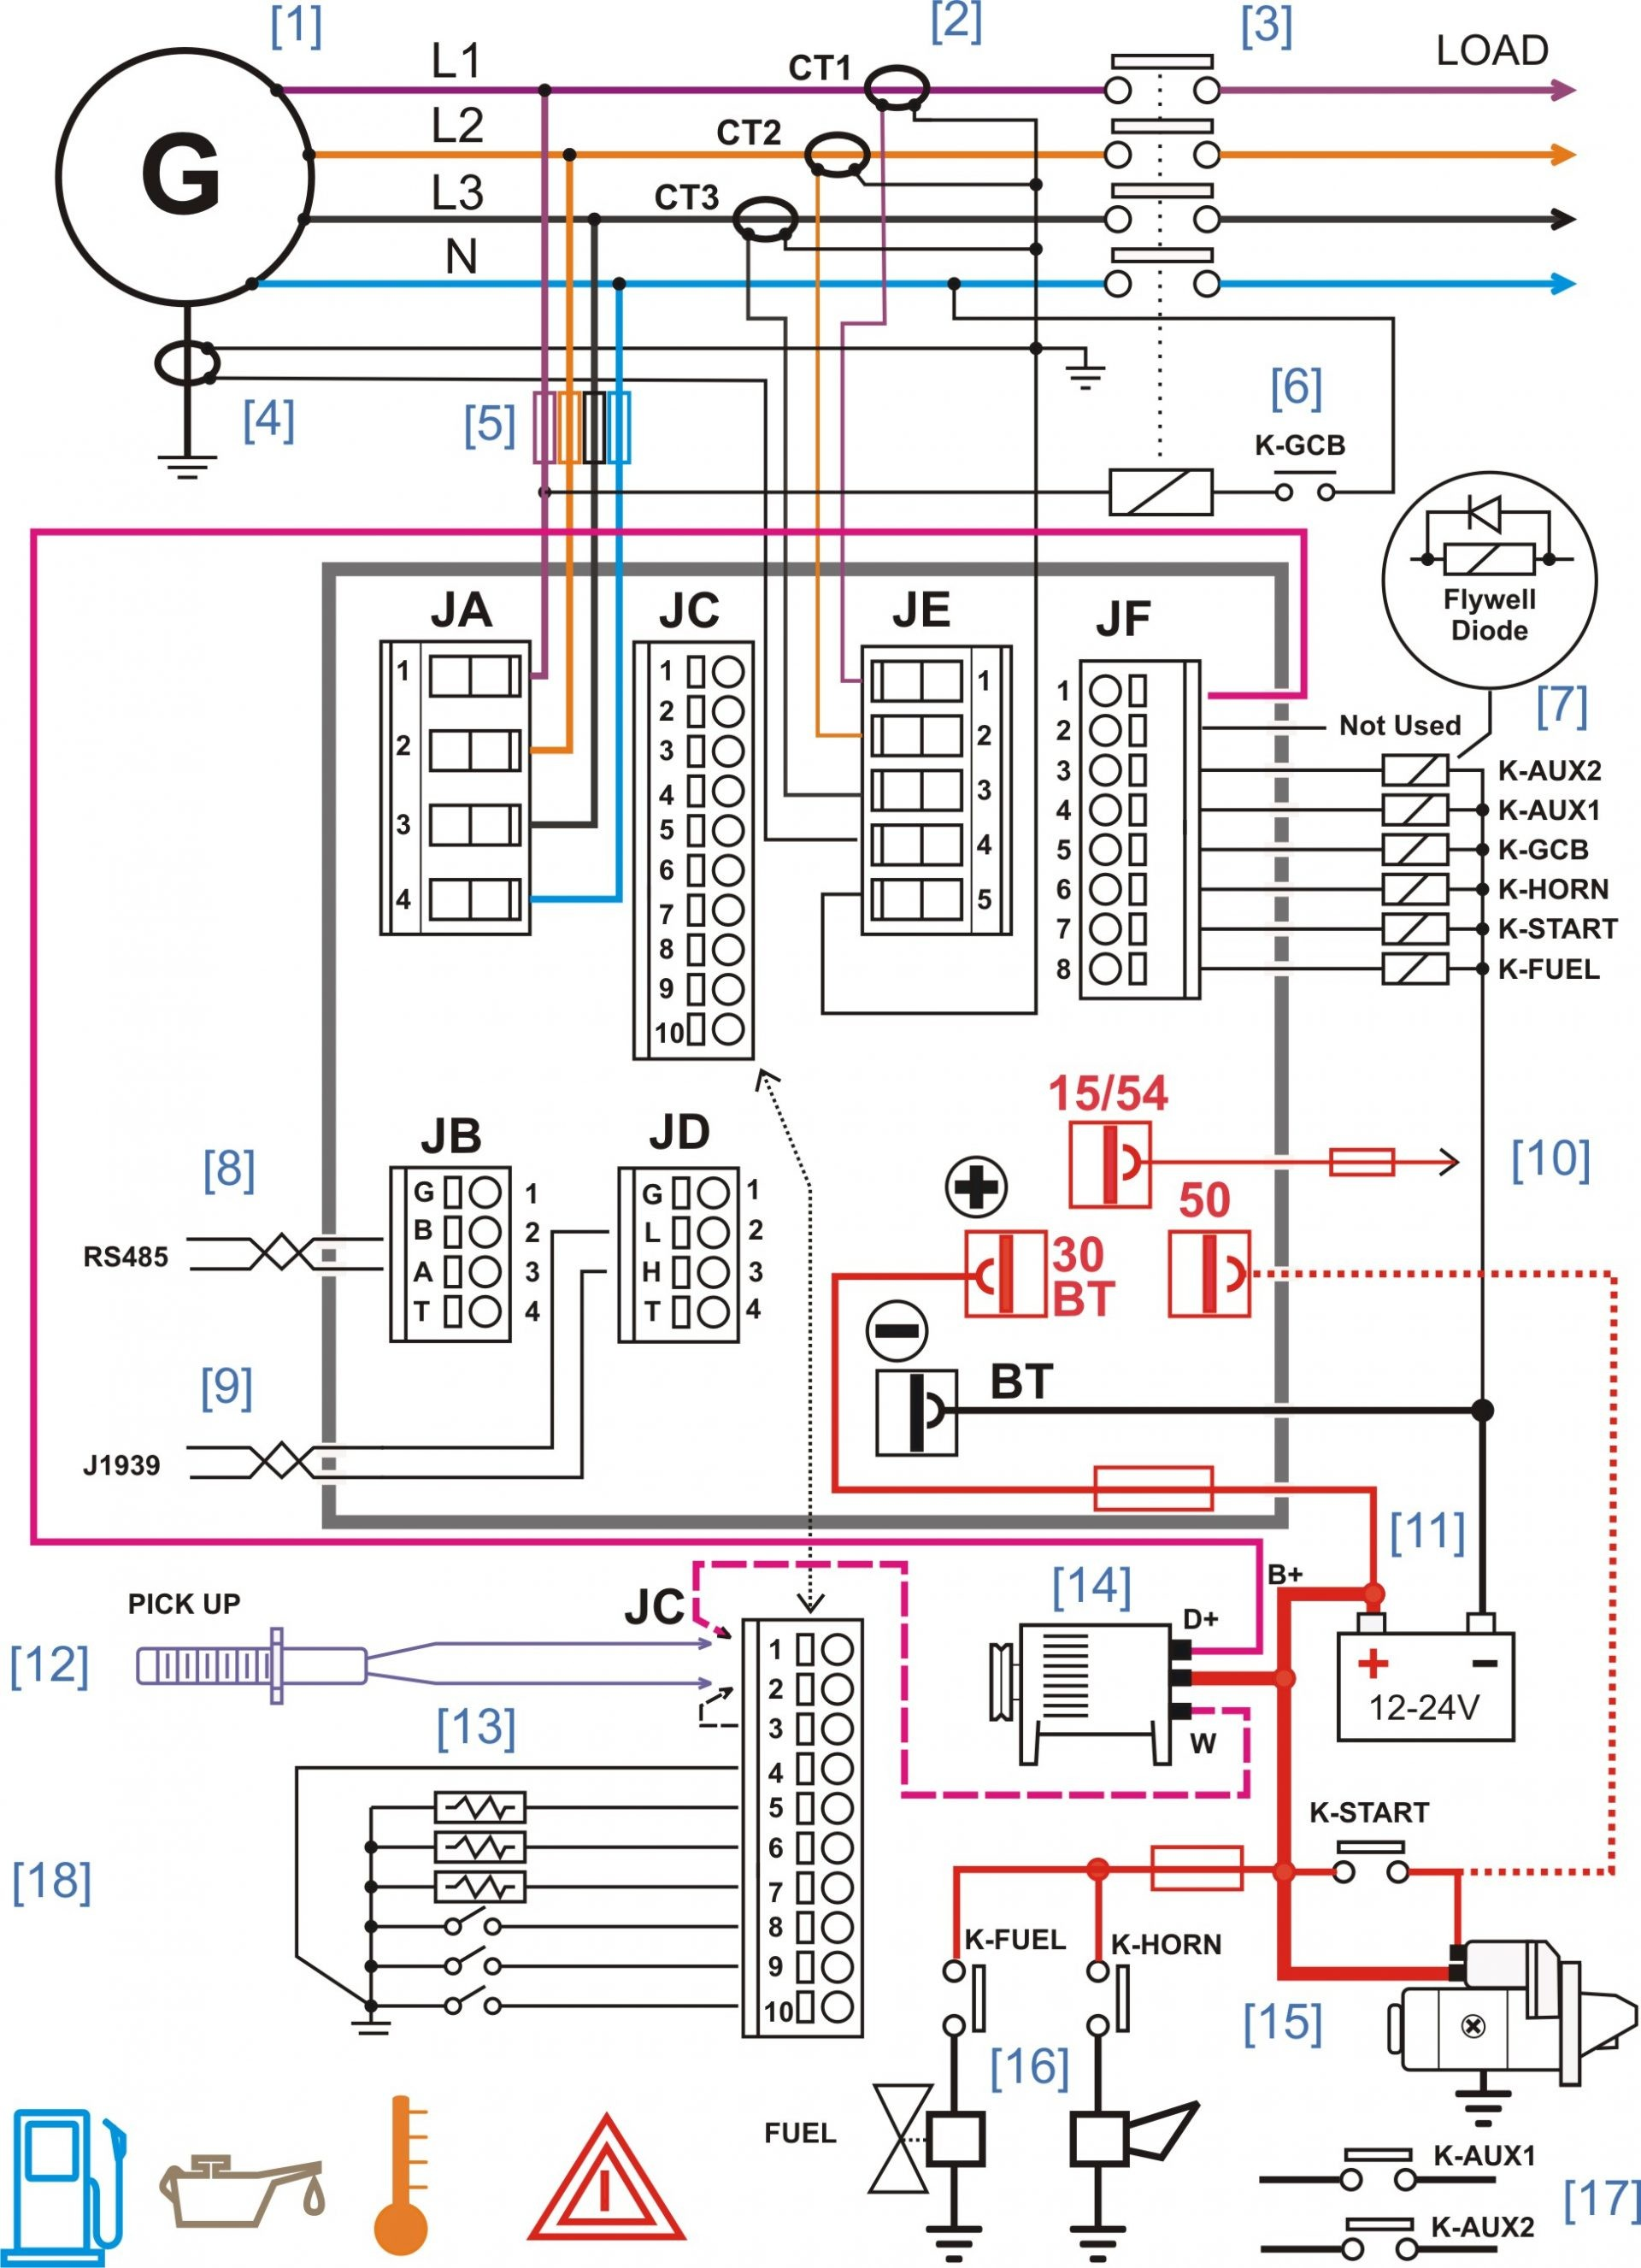 Lighting Control Panel Wiring Diagram Pdf Schemes Street Light Wire Center U2022 Rh 149 28 112 140 Residential Electrical